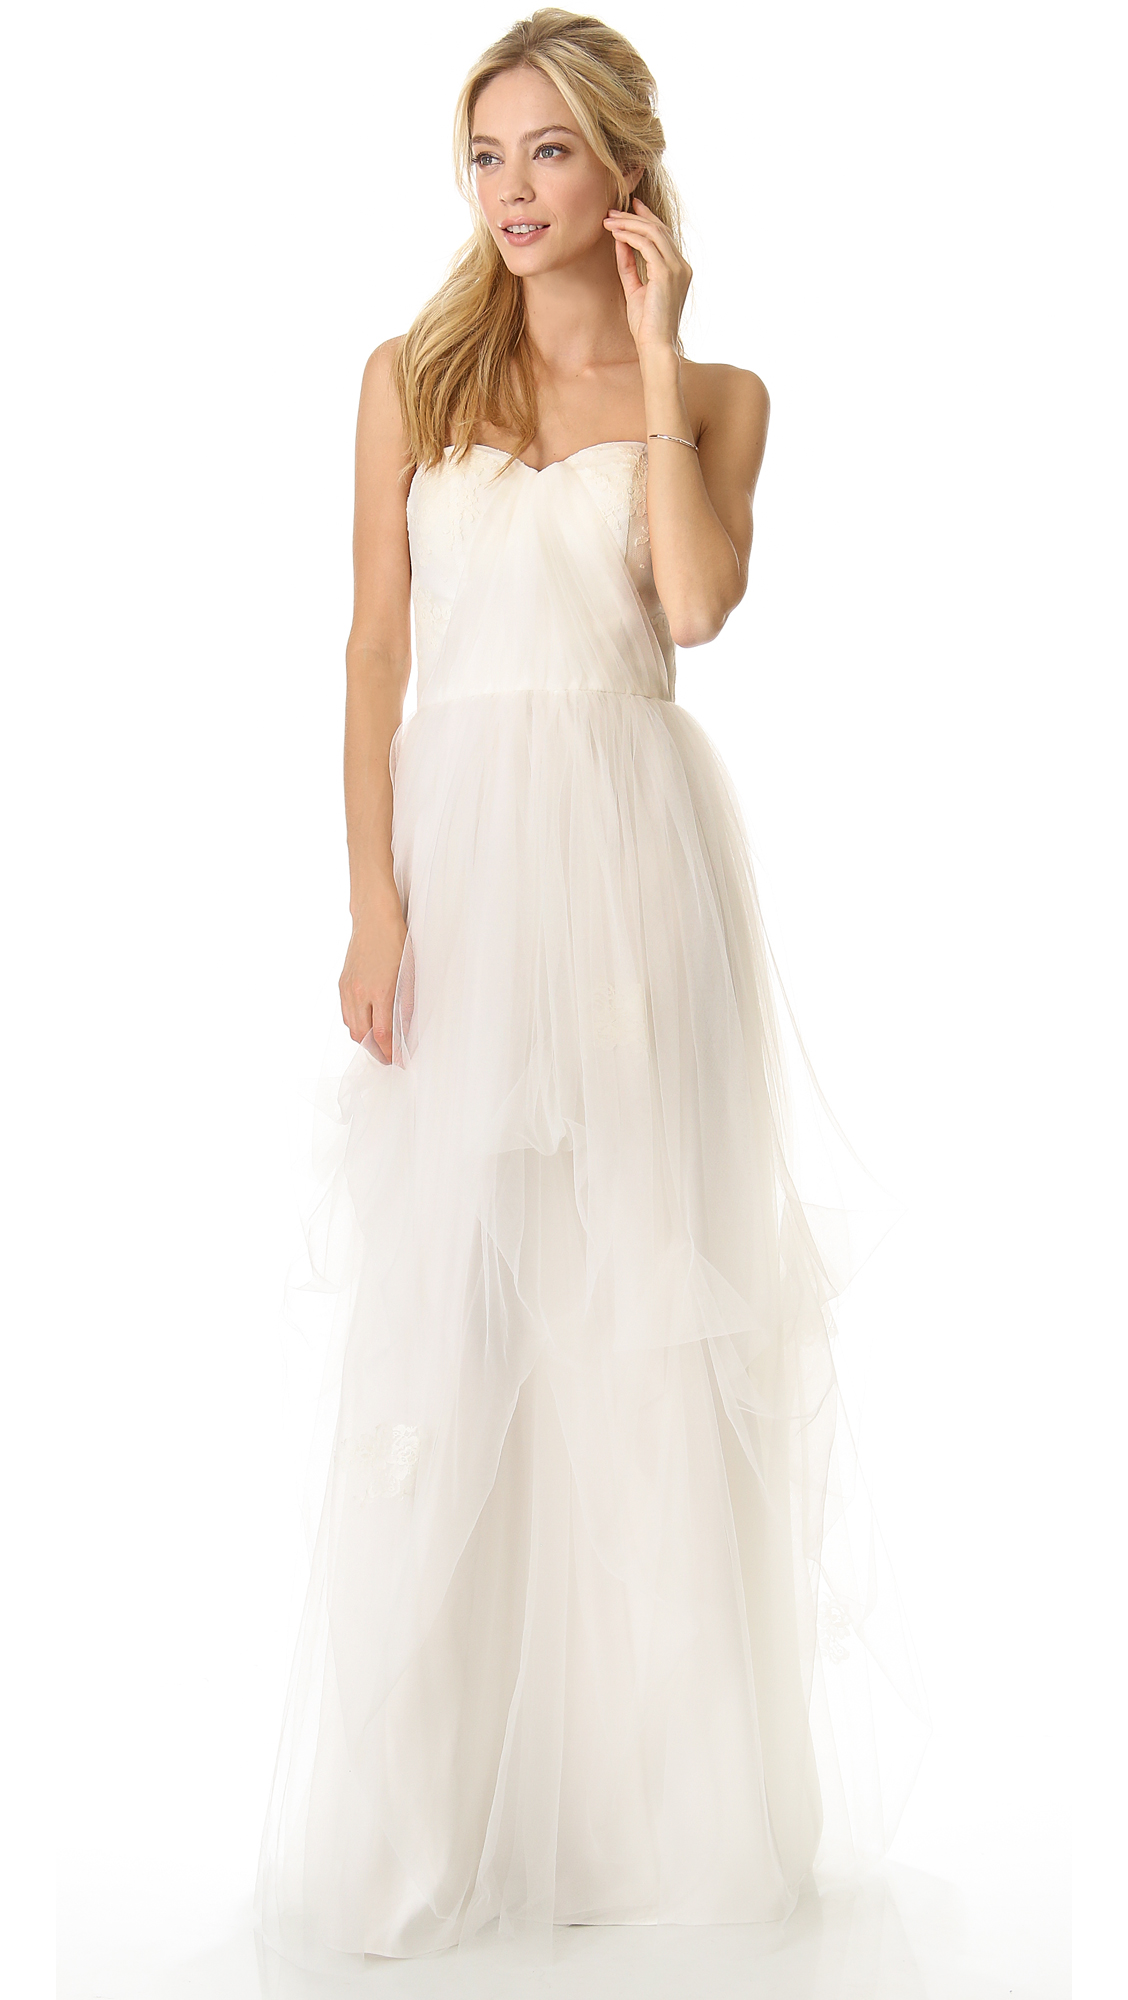 Dovey Beach Wedding Dress